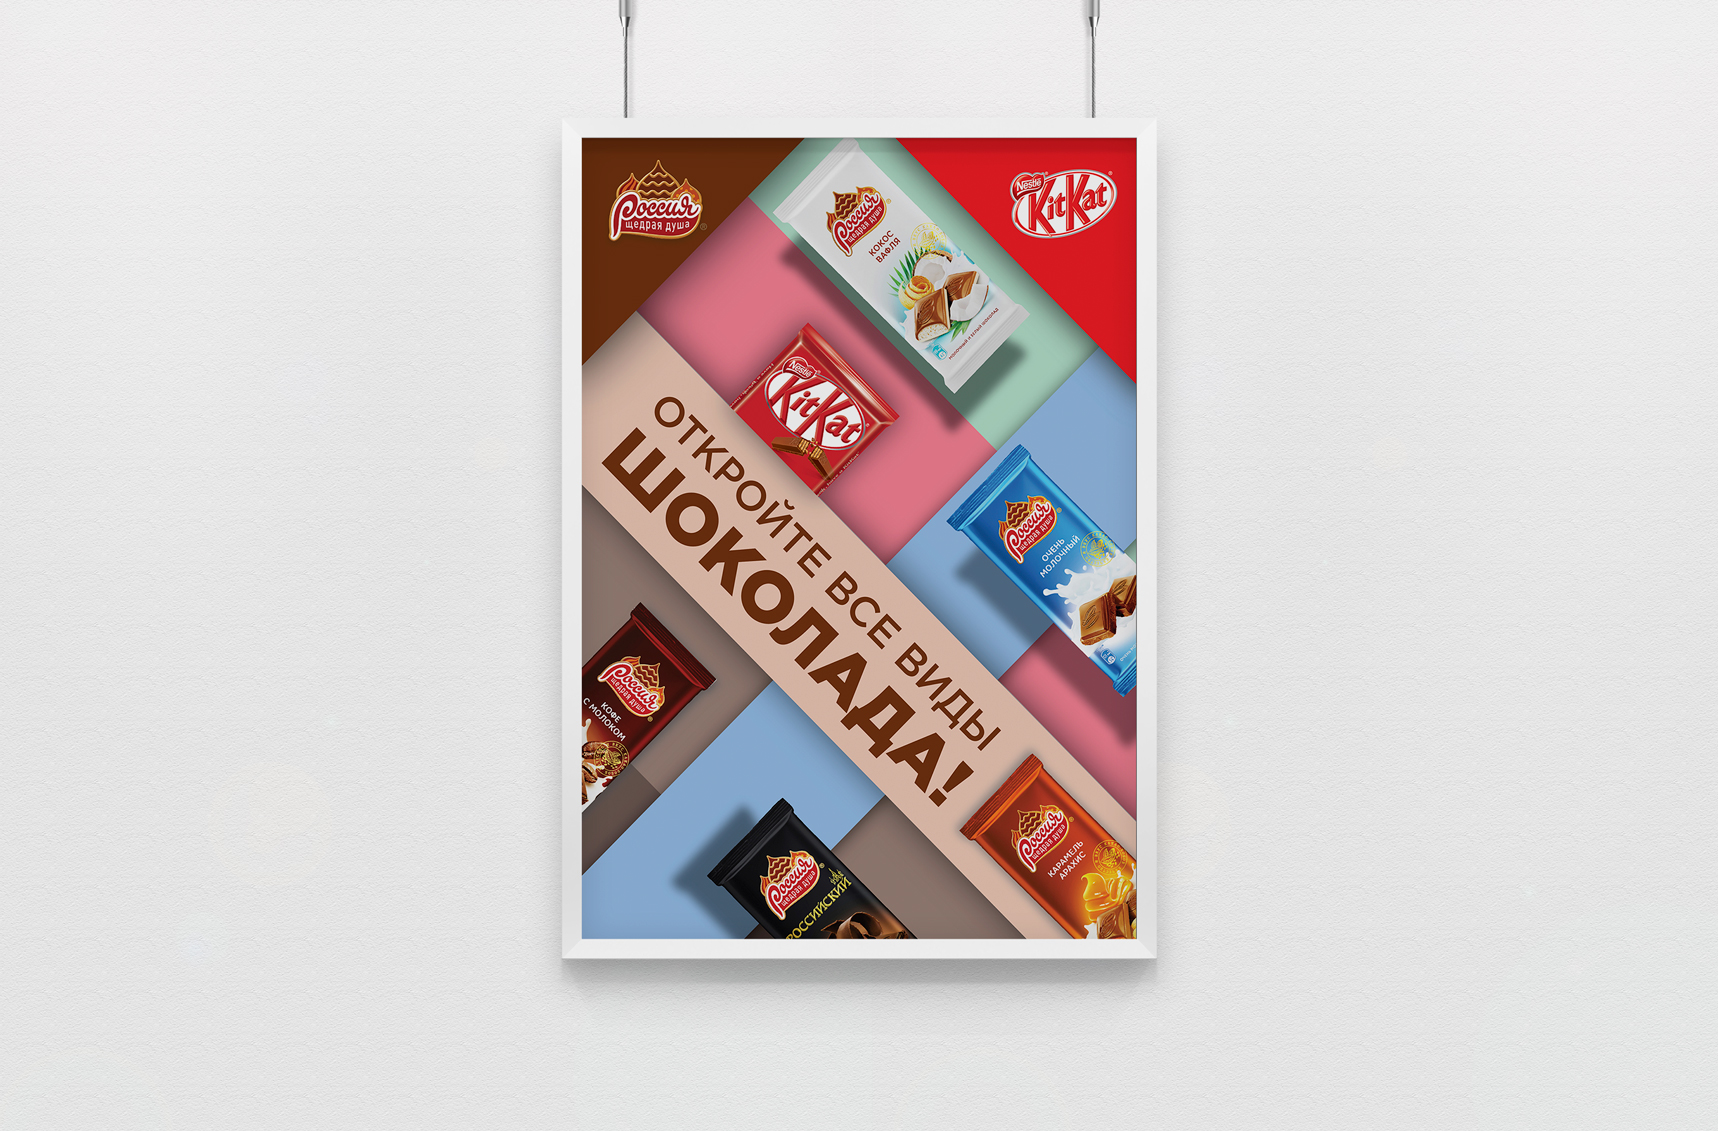 New_confectionery_RshD_Kitkat_v2_4